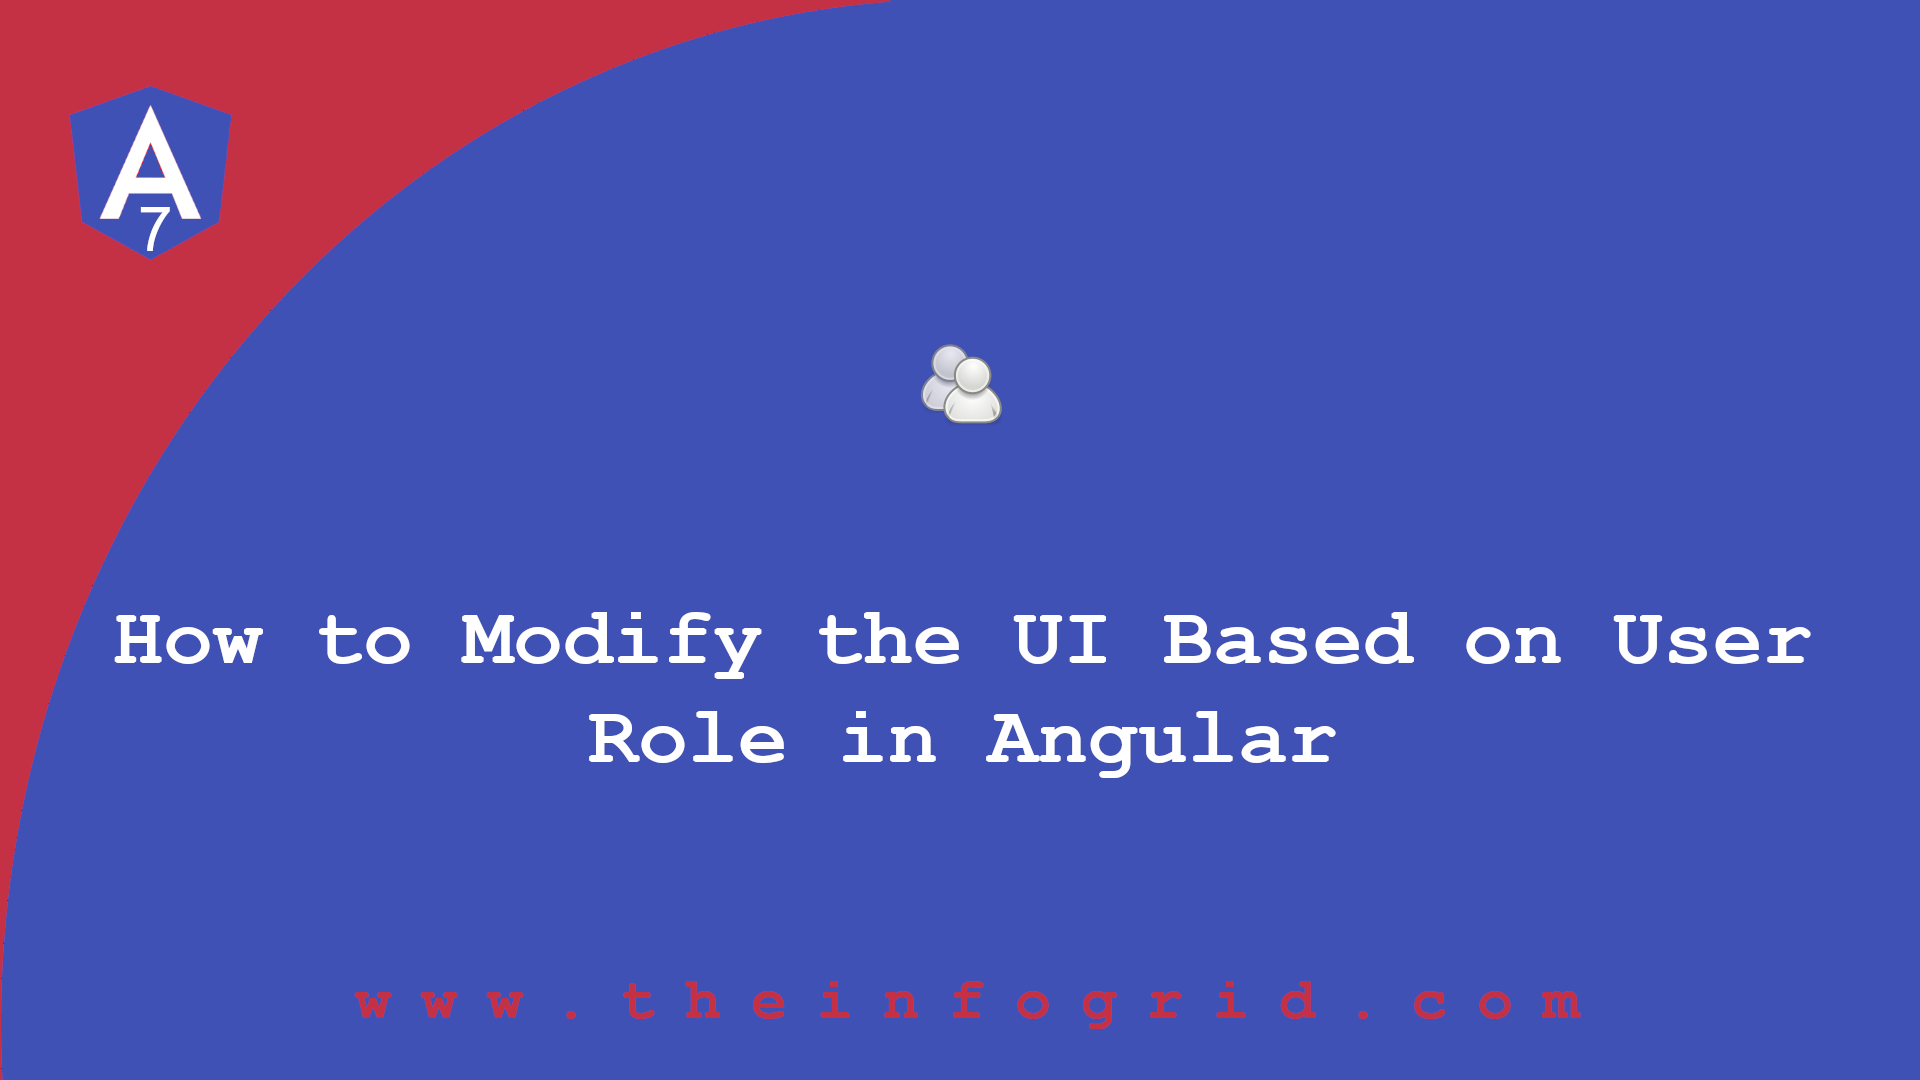 How to Modify the UI Based on User Role in Angular